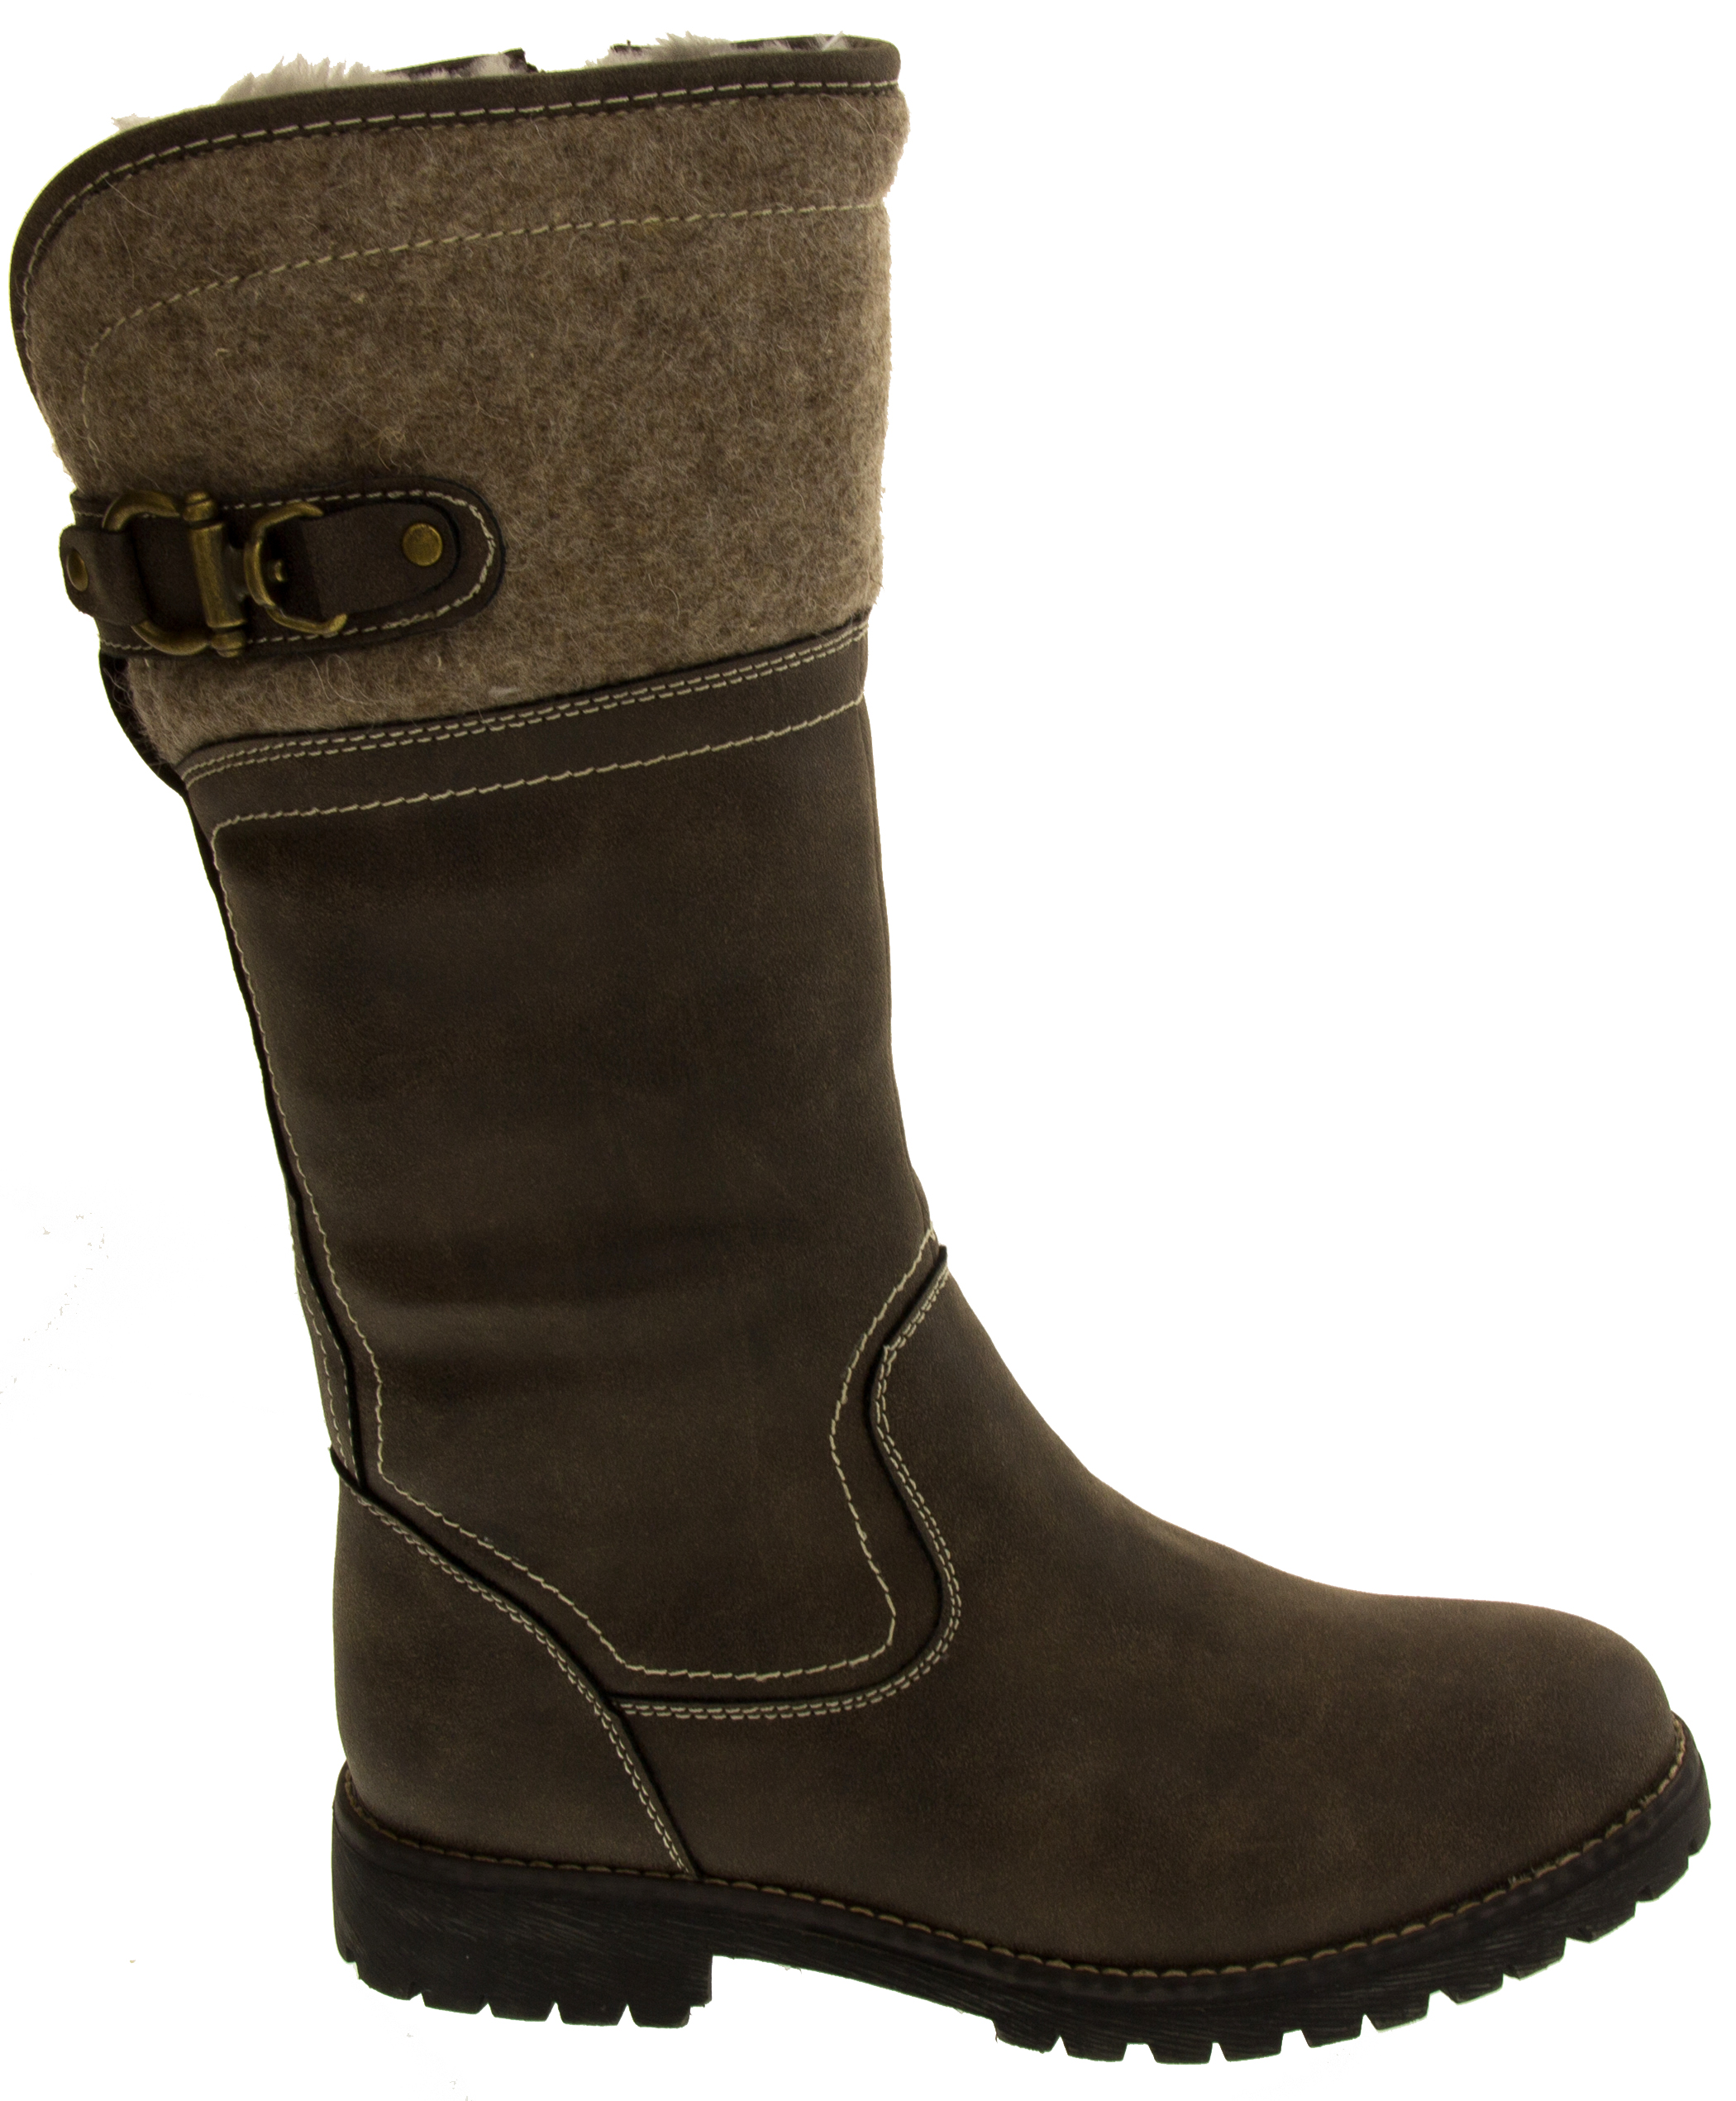 womens keddo mid calf faux leather boots warm